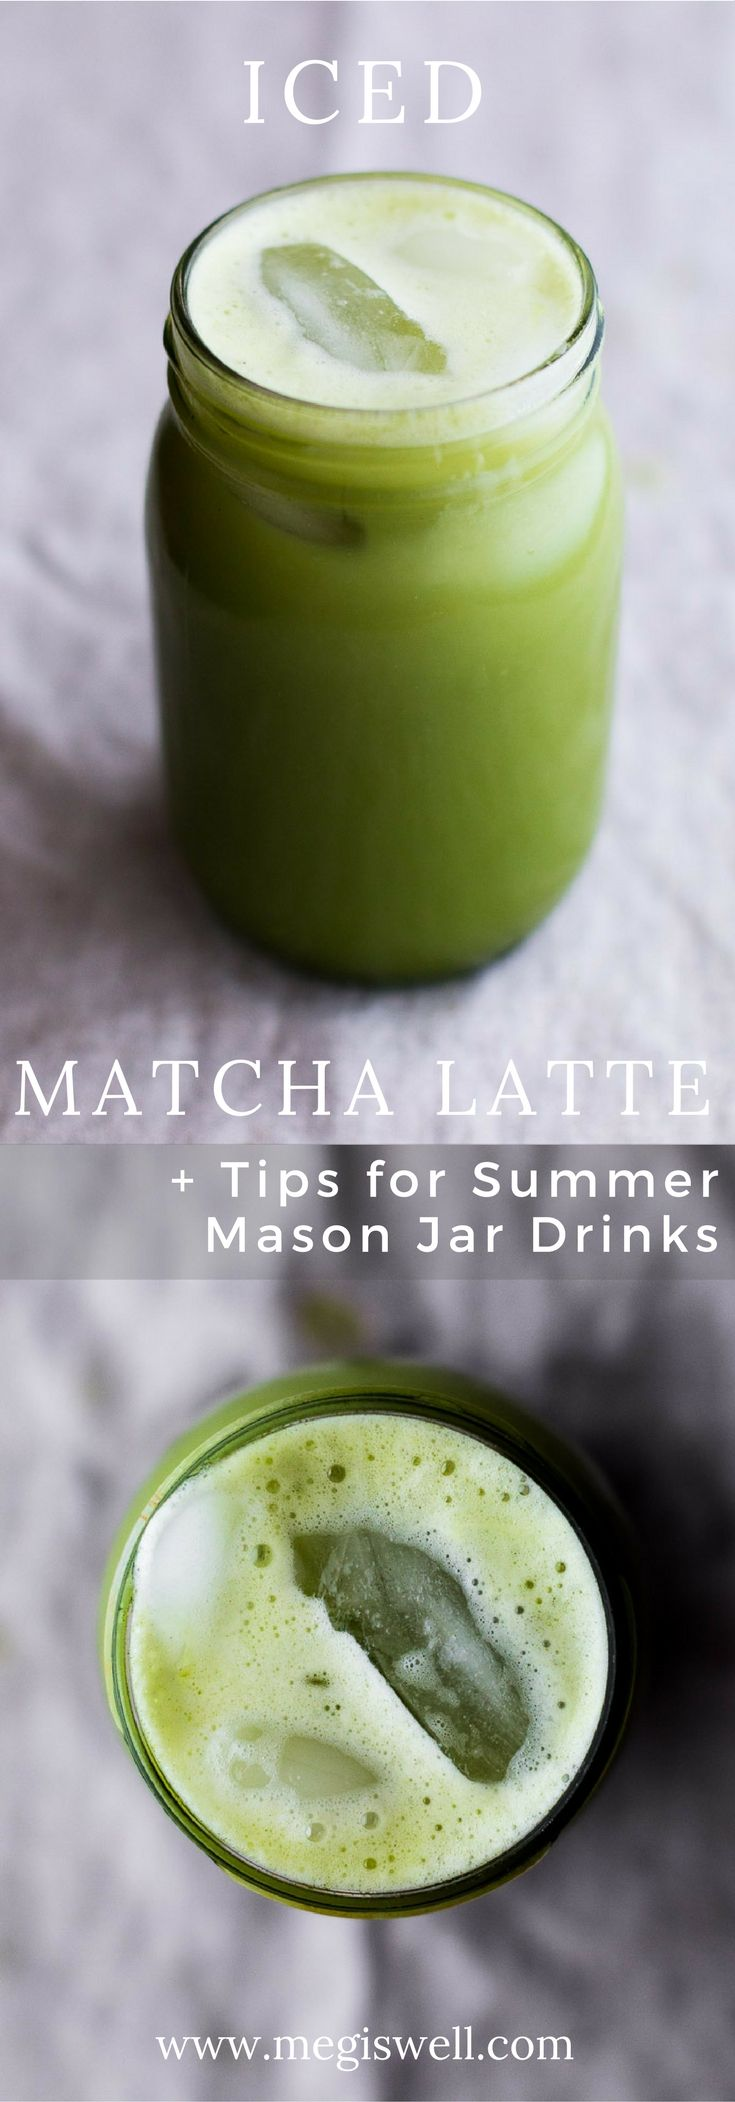 This Iced Matcha Latte is a sweet and light treat that's easily made in a mason jar for fast summer fun. | www.megiswell.com